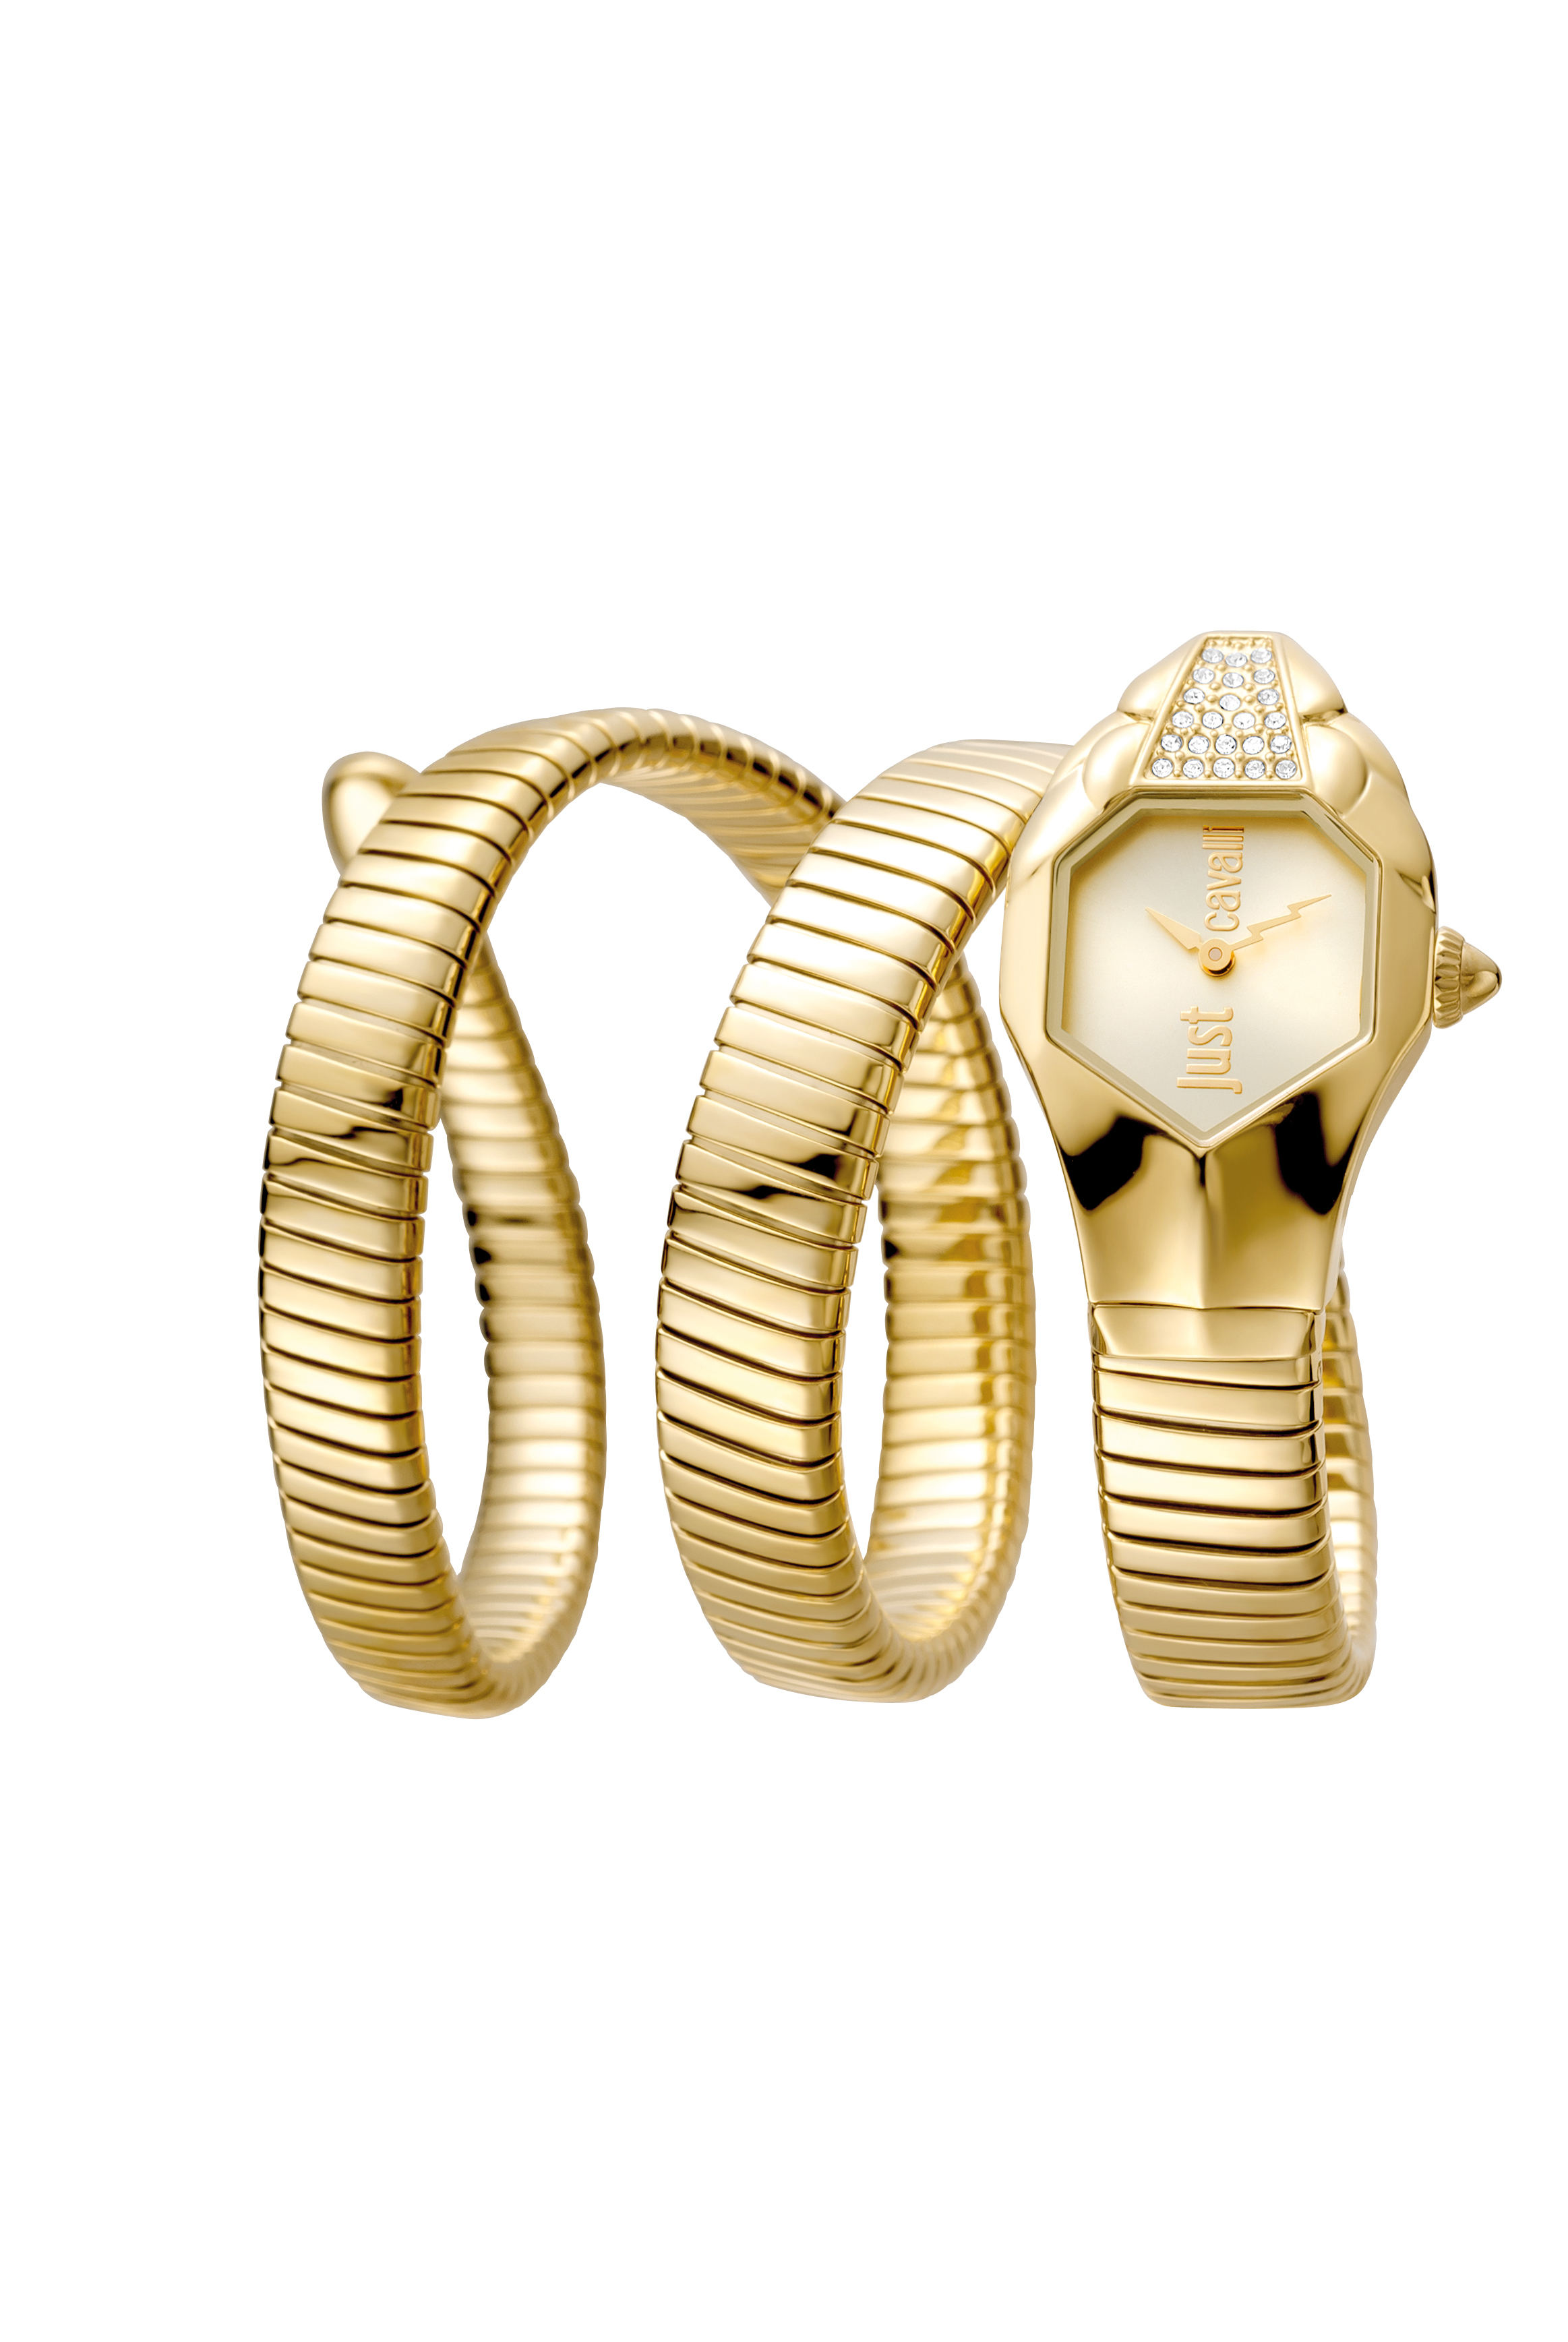 Just Womens Rings